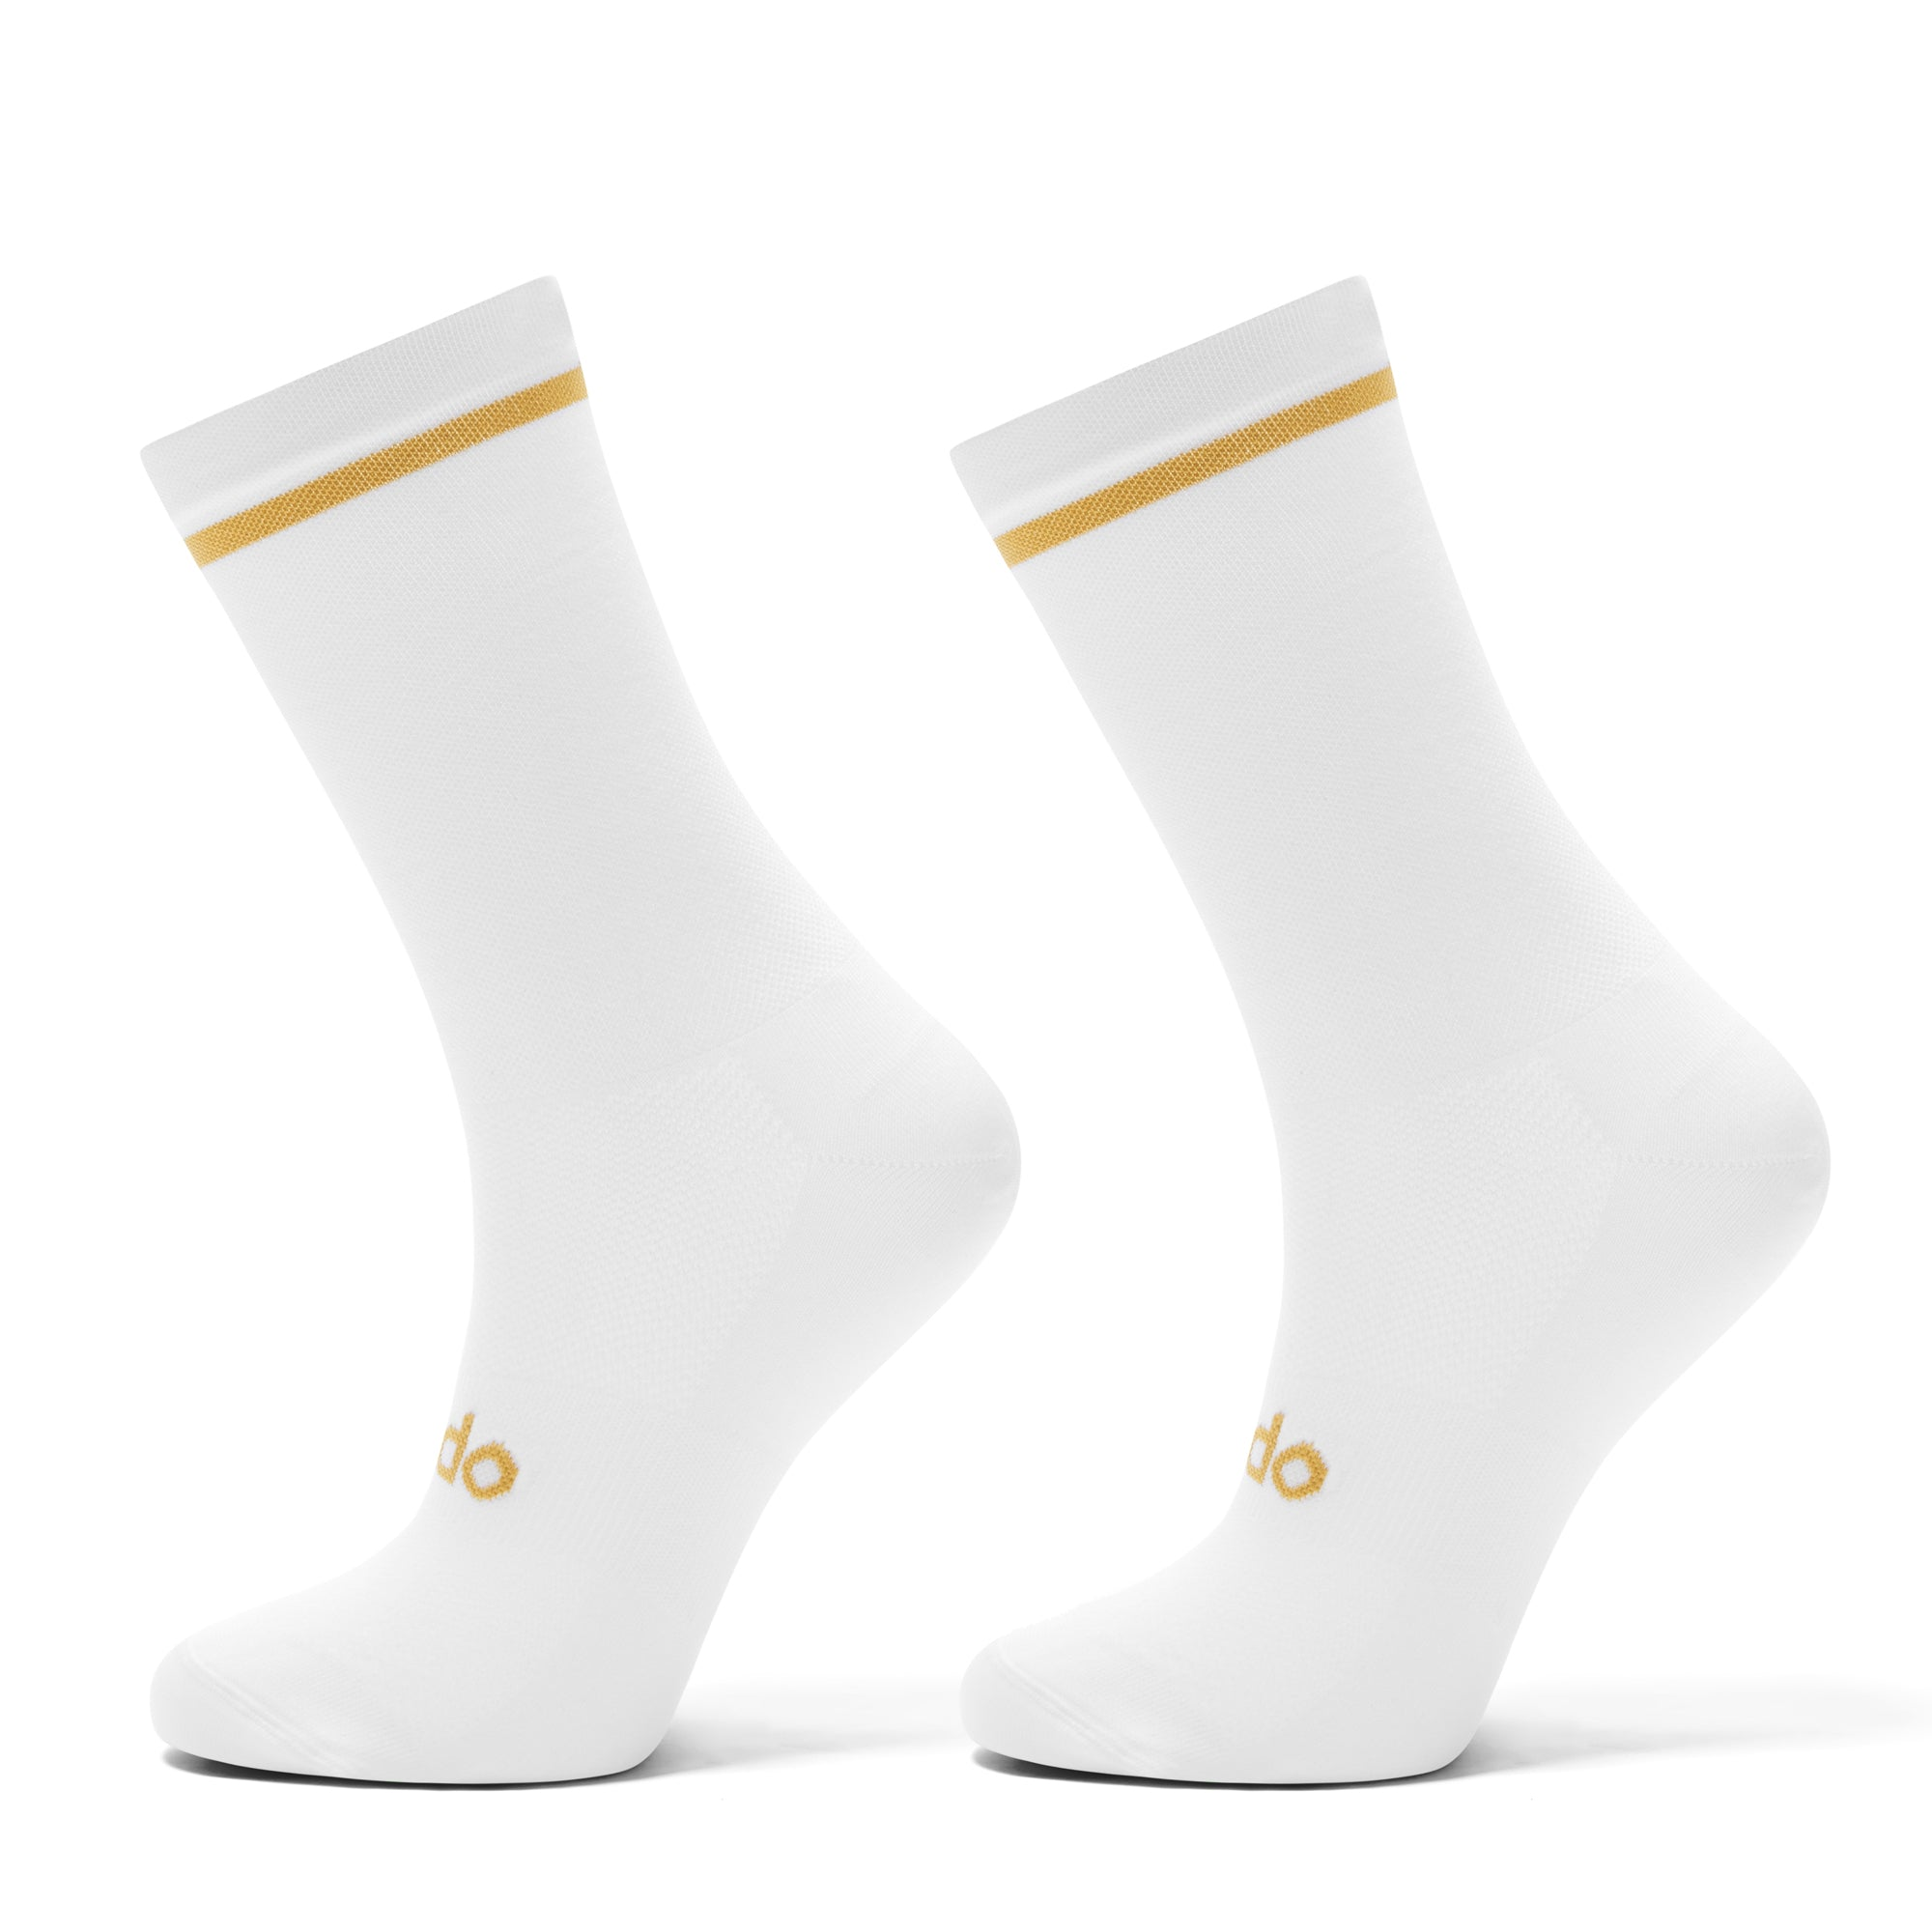 White Cycling Socks with a gold trim